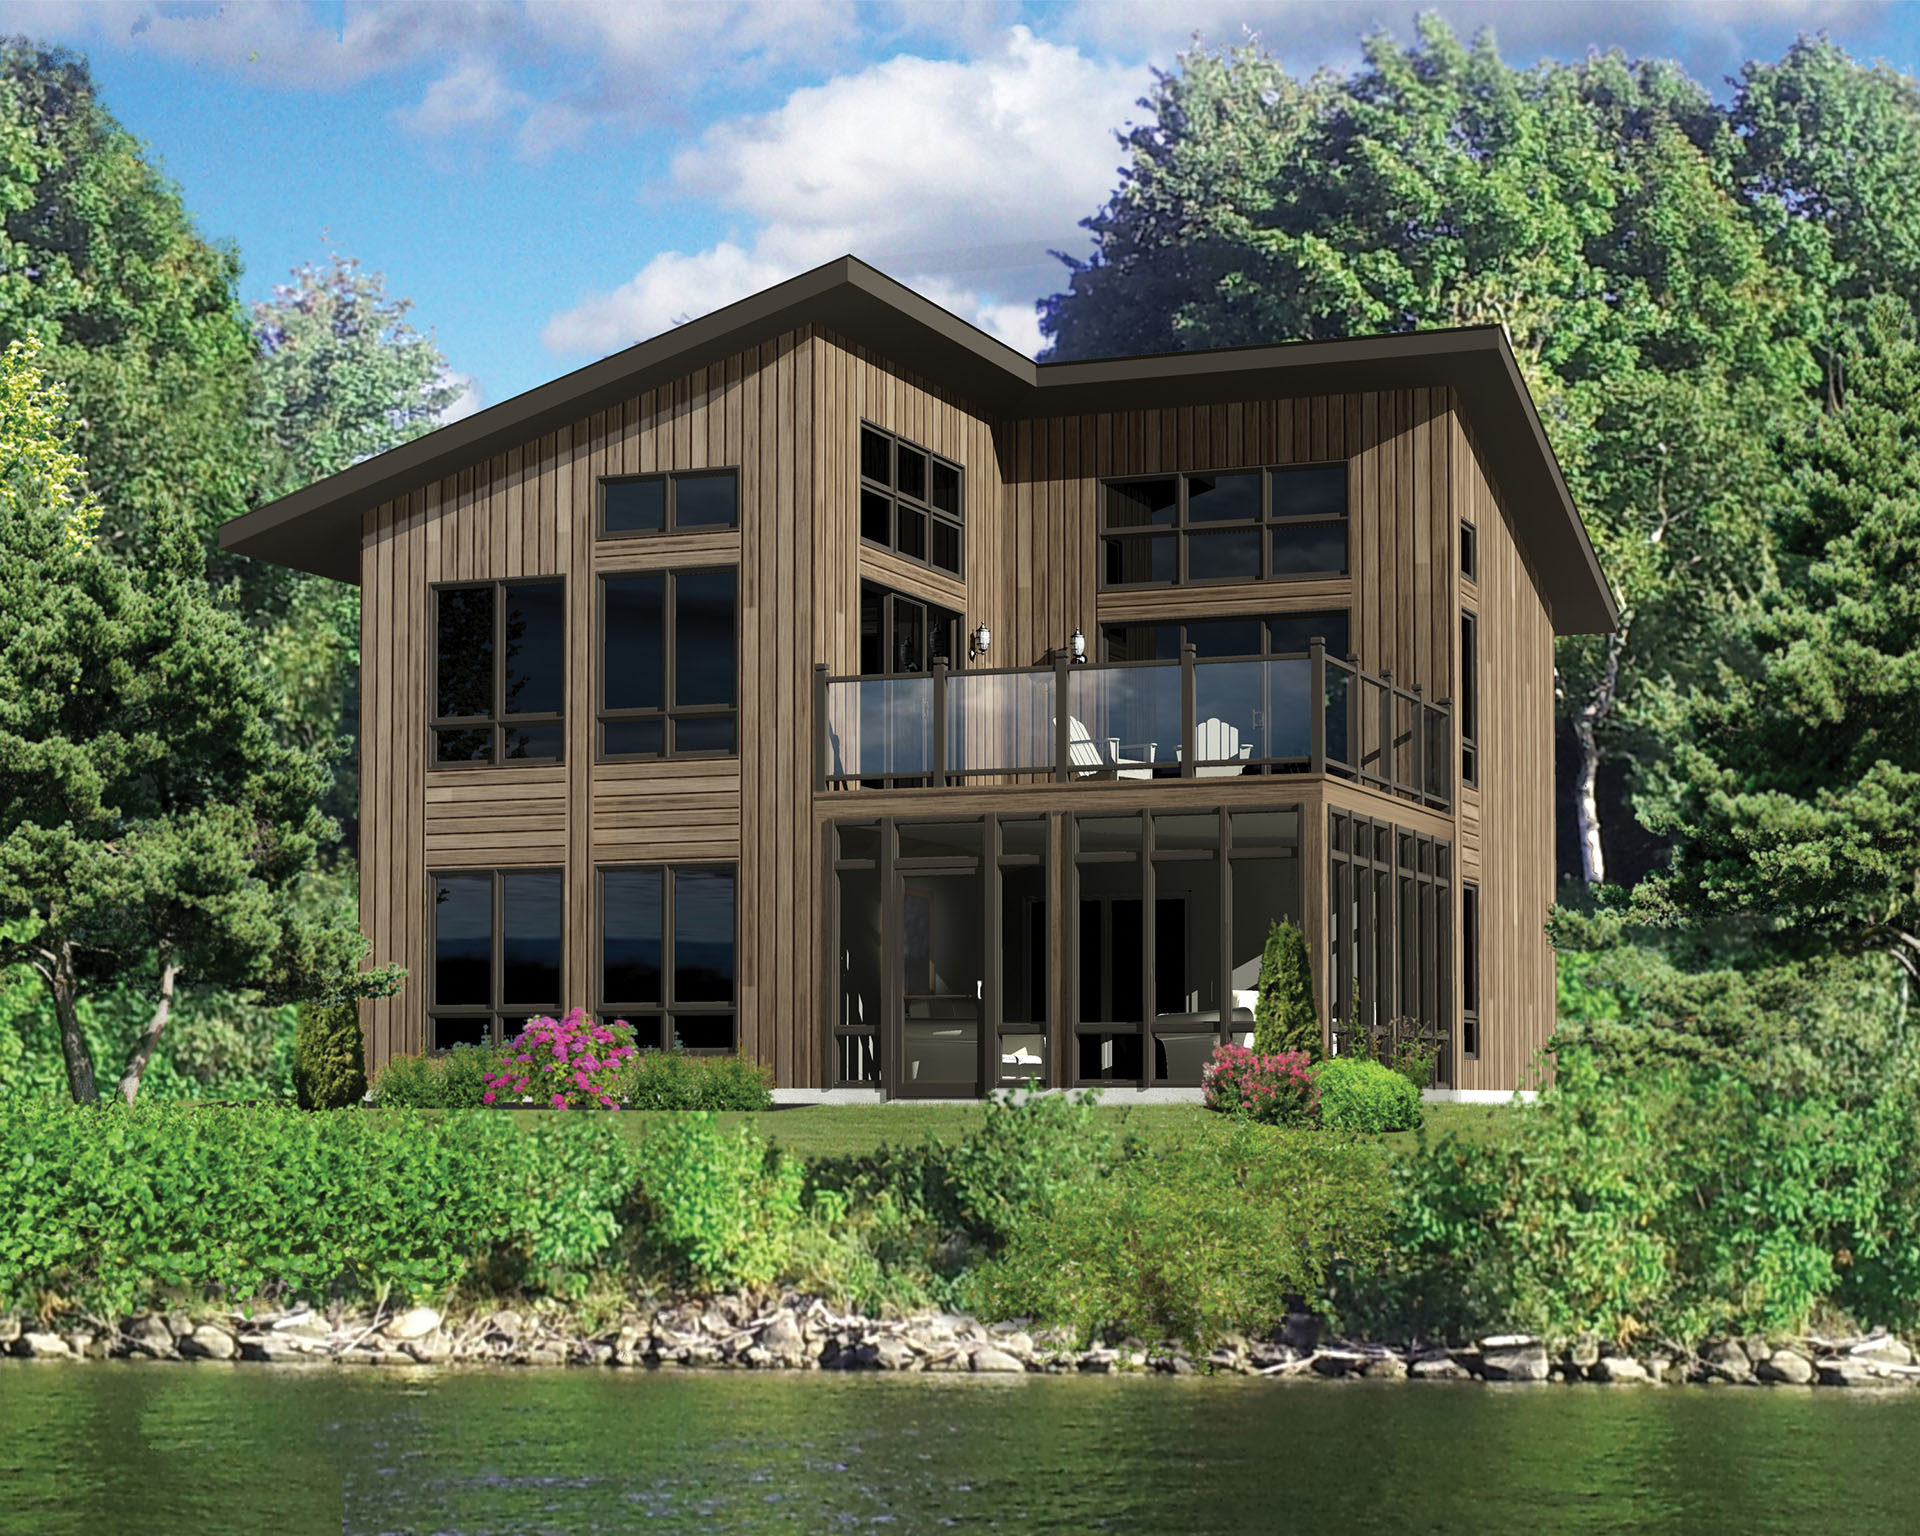 Tiny Home Designs: Contemporary Vacation House Plan - 80819PM